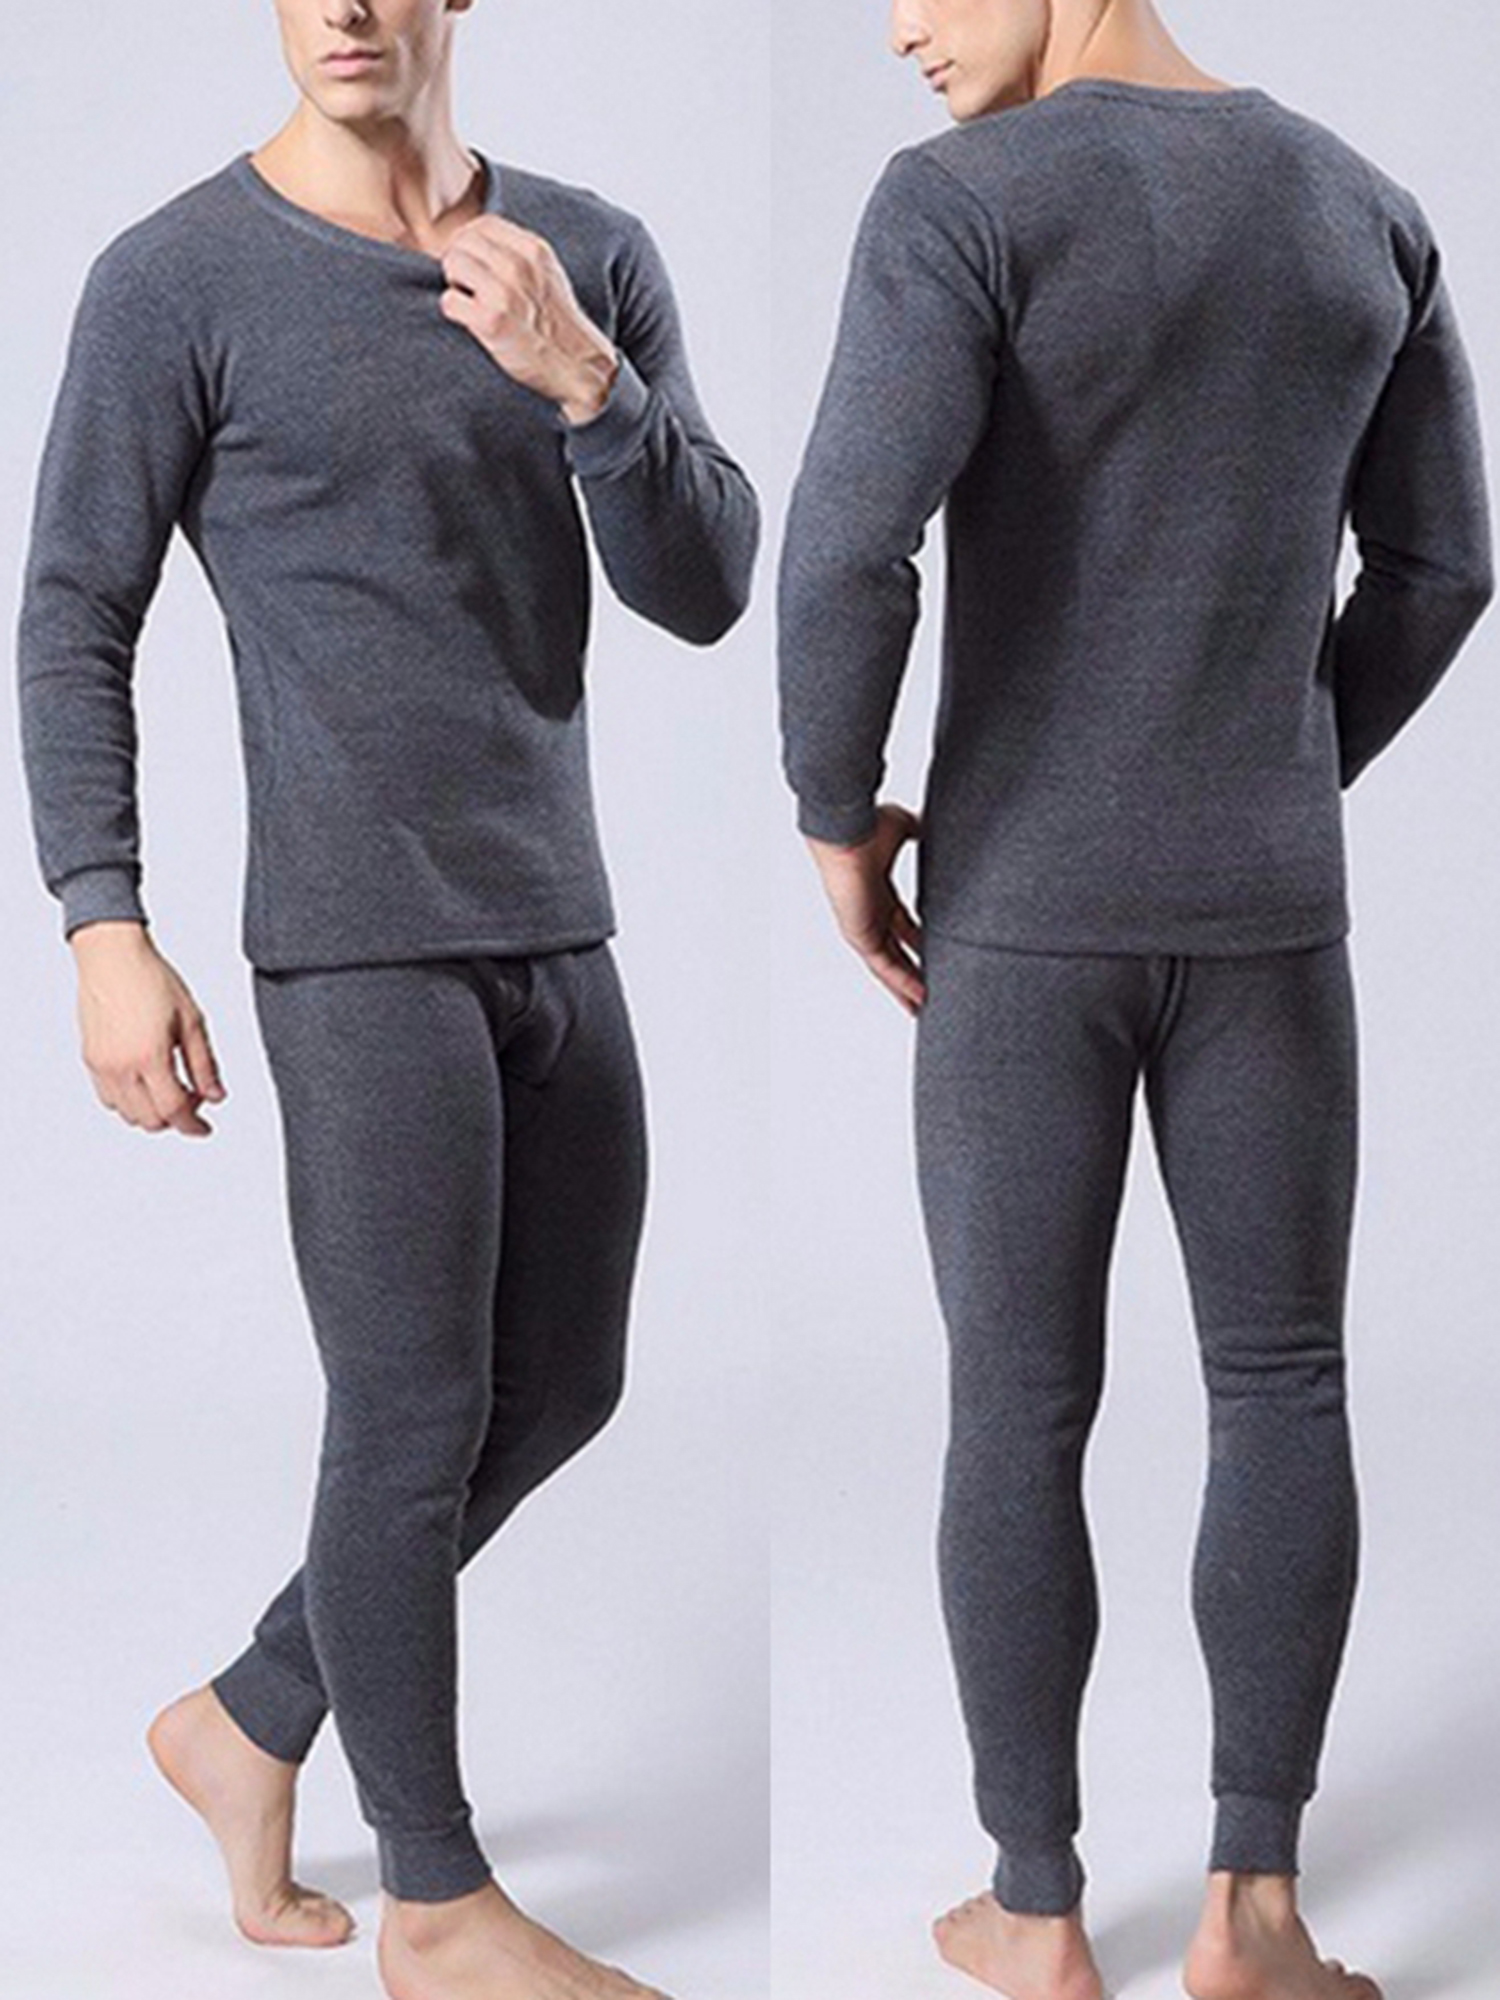 Mens Long johns+Tops Thermal Underwear Breathable Bottom Pants Casual Trousers